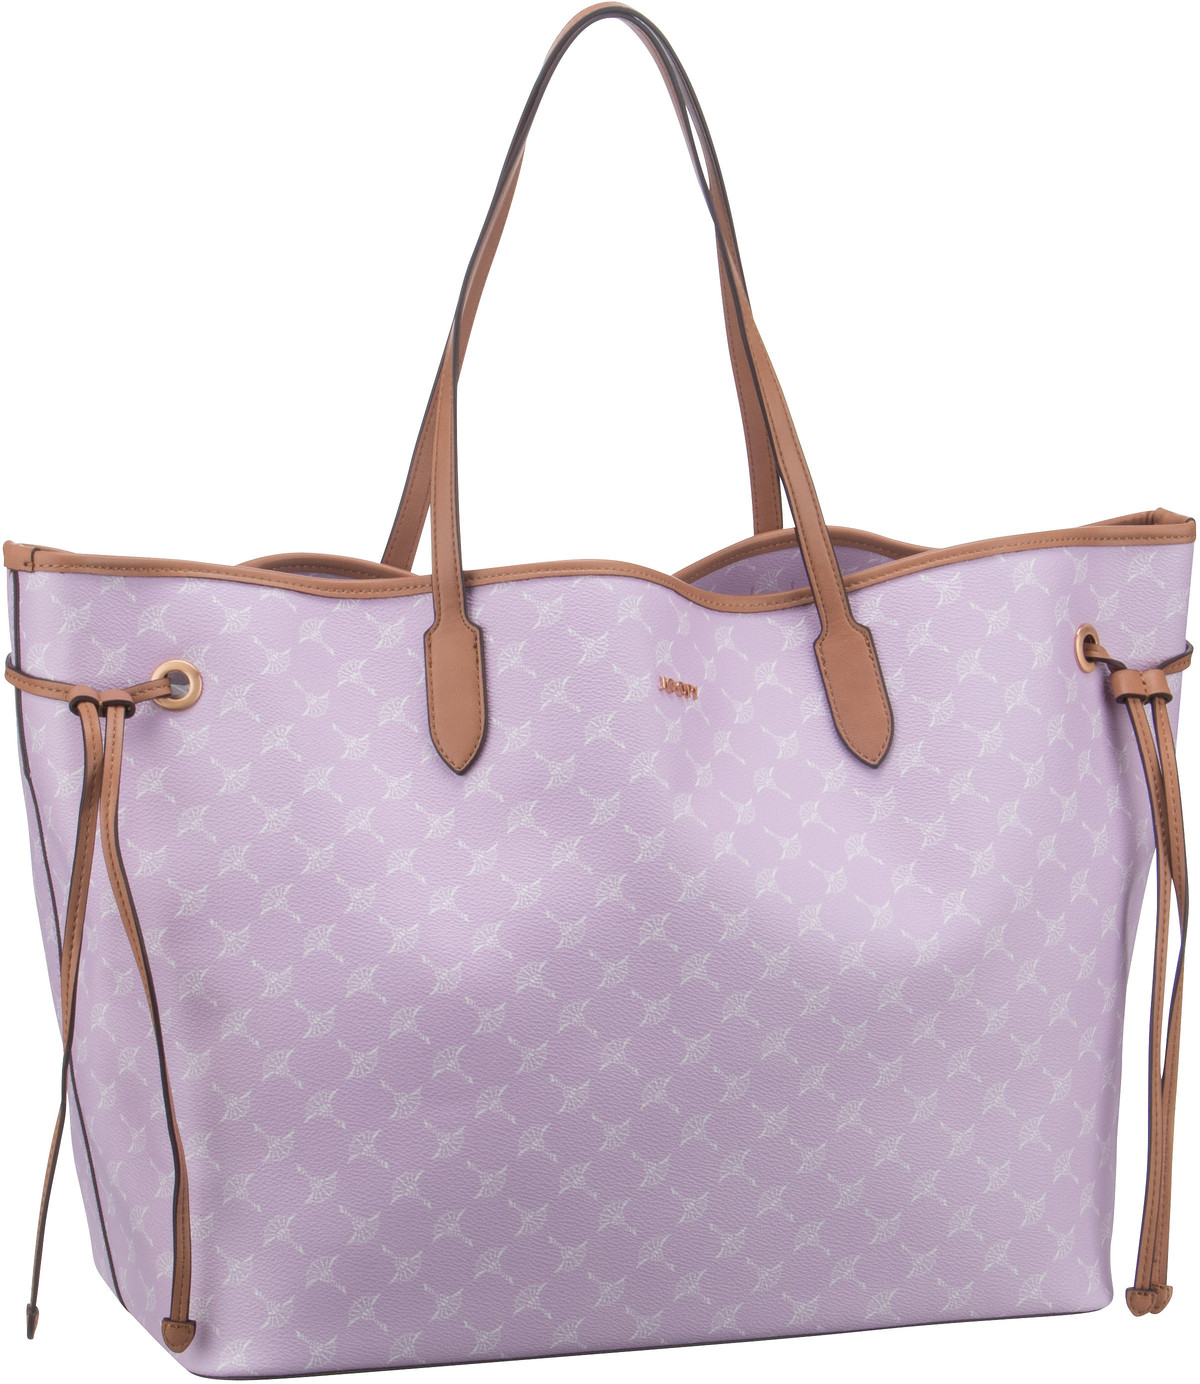 Handtasche Lara Cortina Shopper Large Lavender